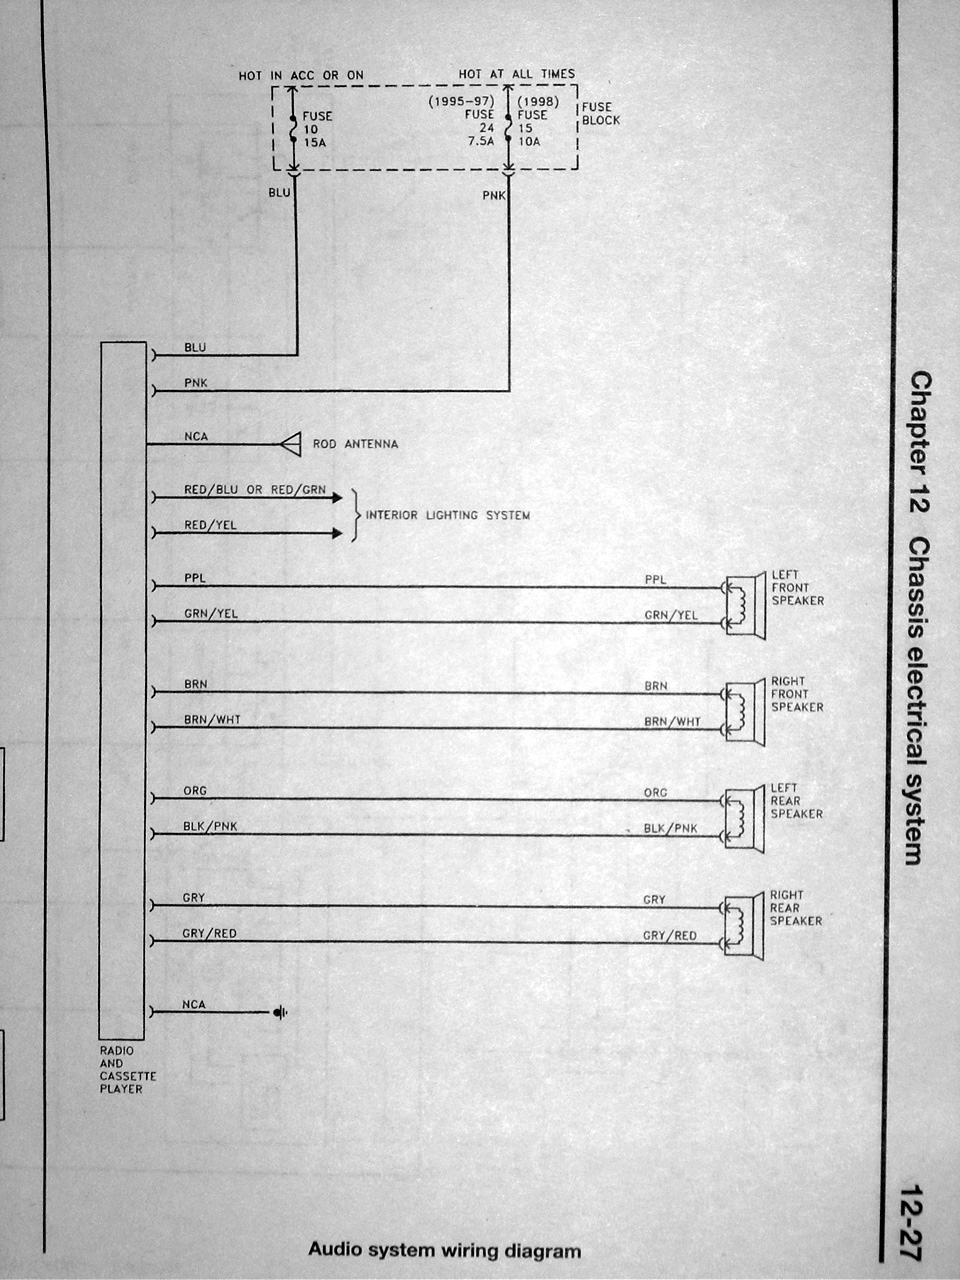 92 Nissan Sentra Fuse Box Ask Answer Wiring Diagram 2009 94 Library Rh 15 Codingcommunity De 1992